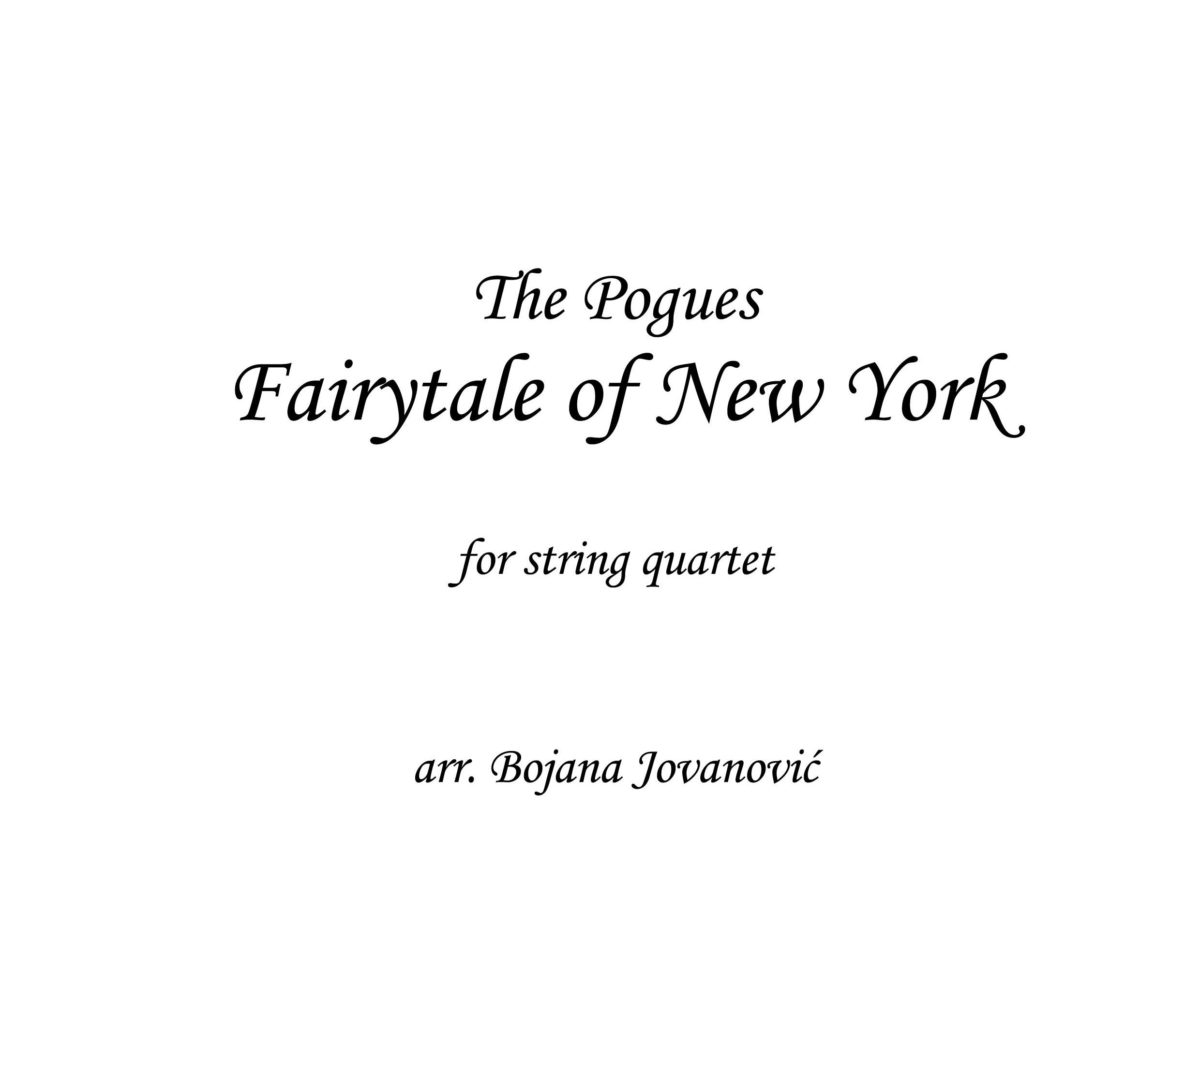 Fairytale of New York (The Pogues) - Sheet Music